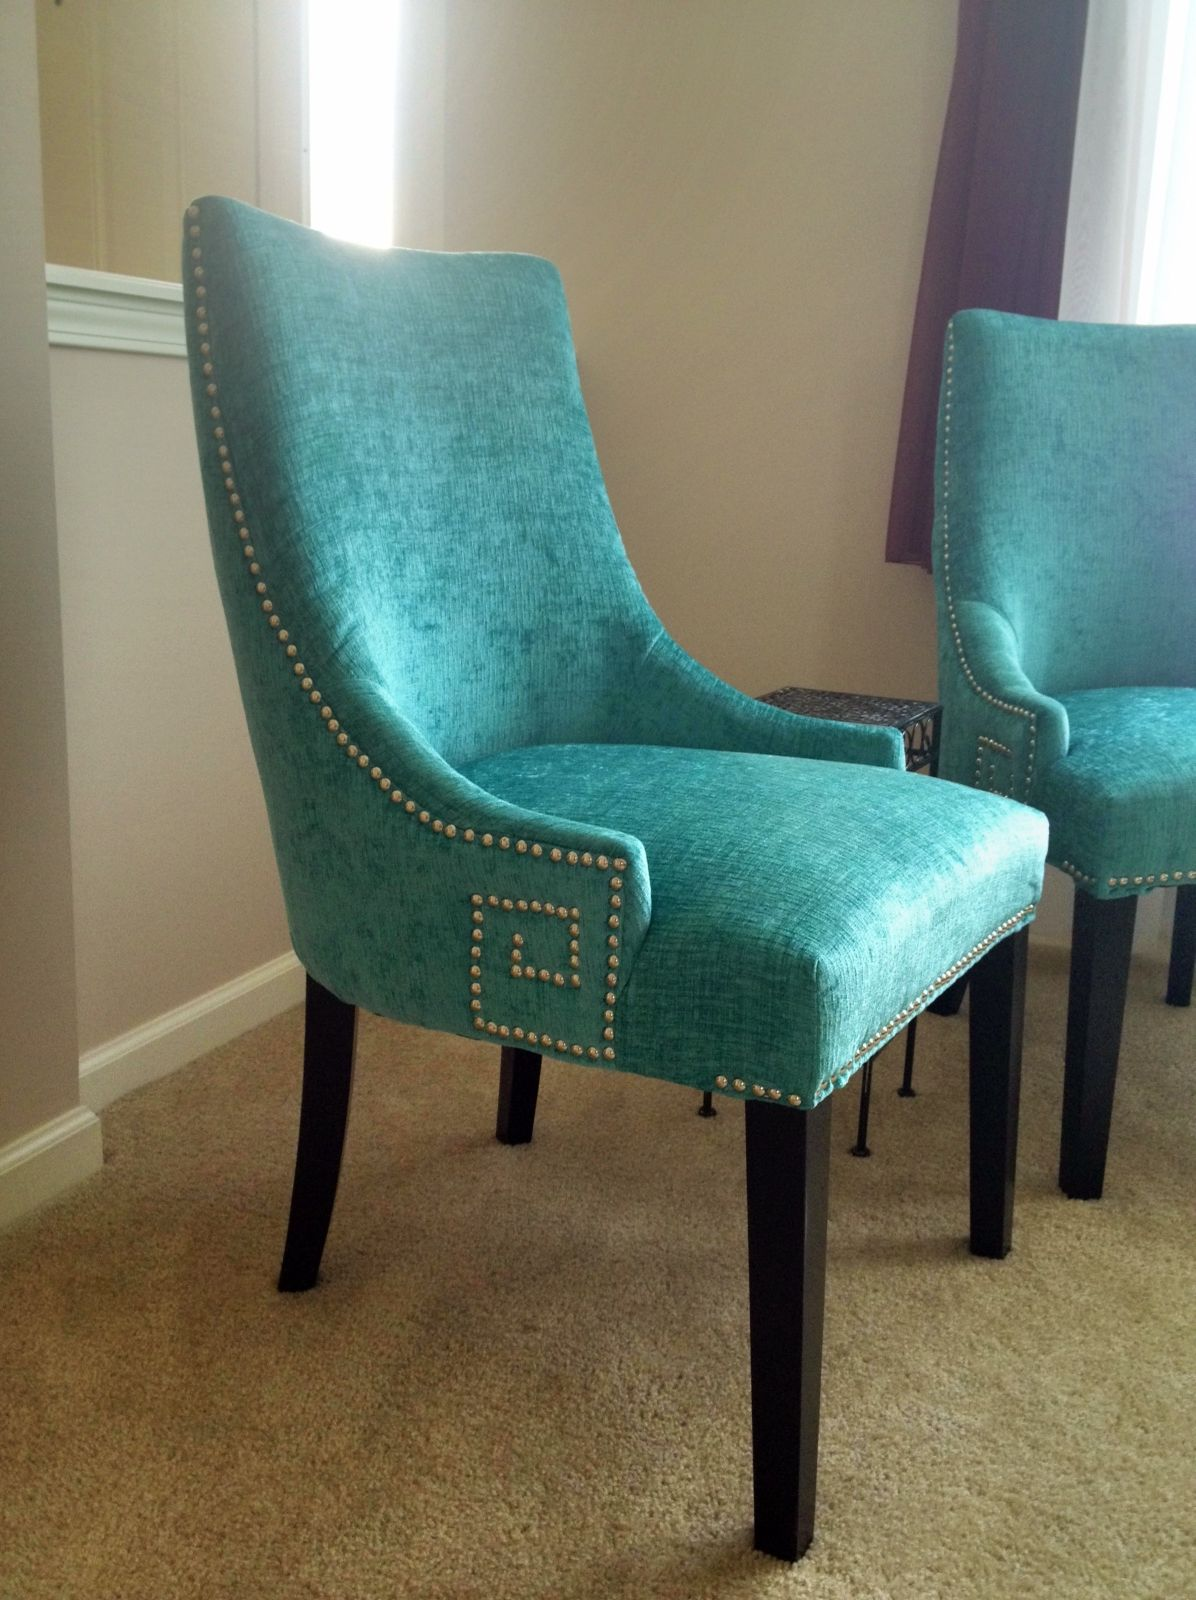 Turquoise chair Dining/chairs Turquoise dining chairs